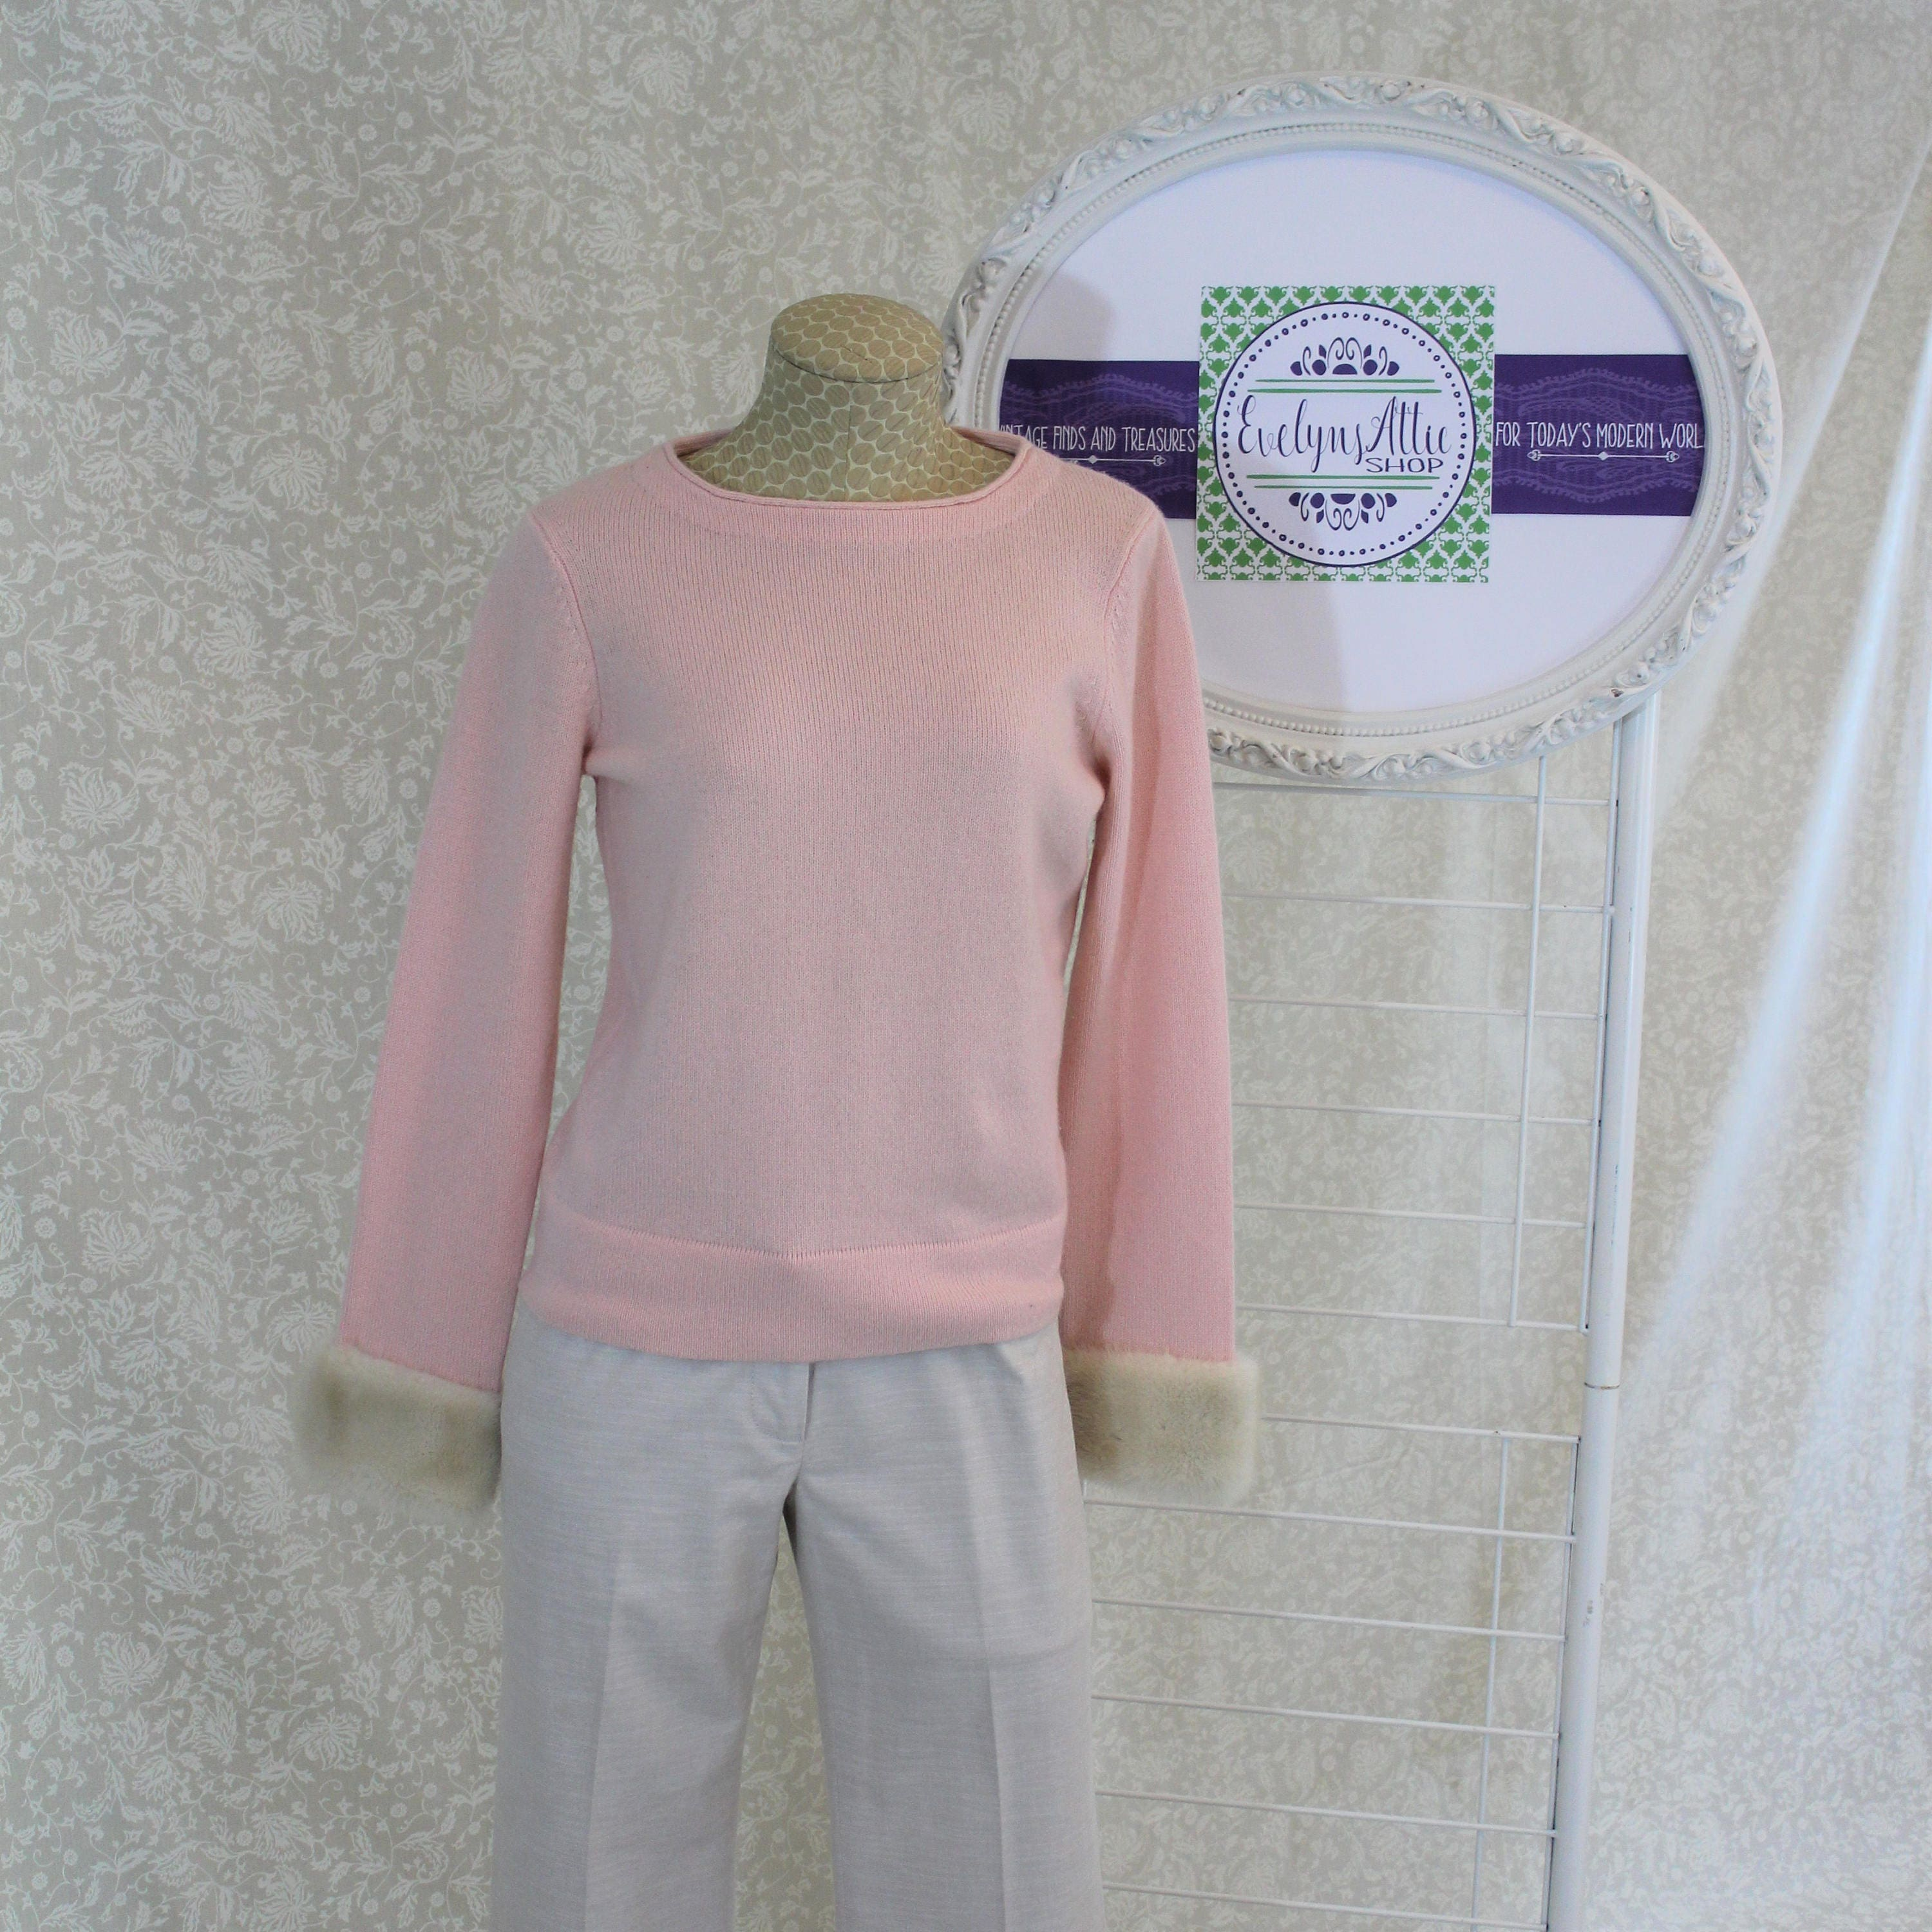 Pink Cashmere Sweater with White Mink Cuffs from Saks Fifth Avenue ...